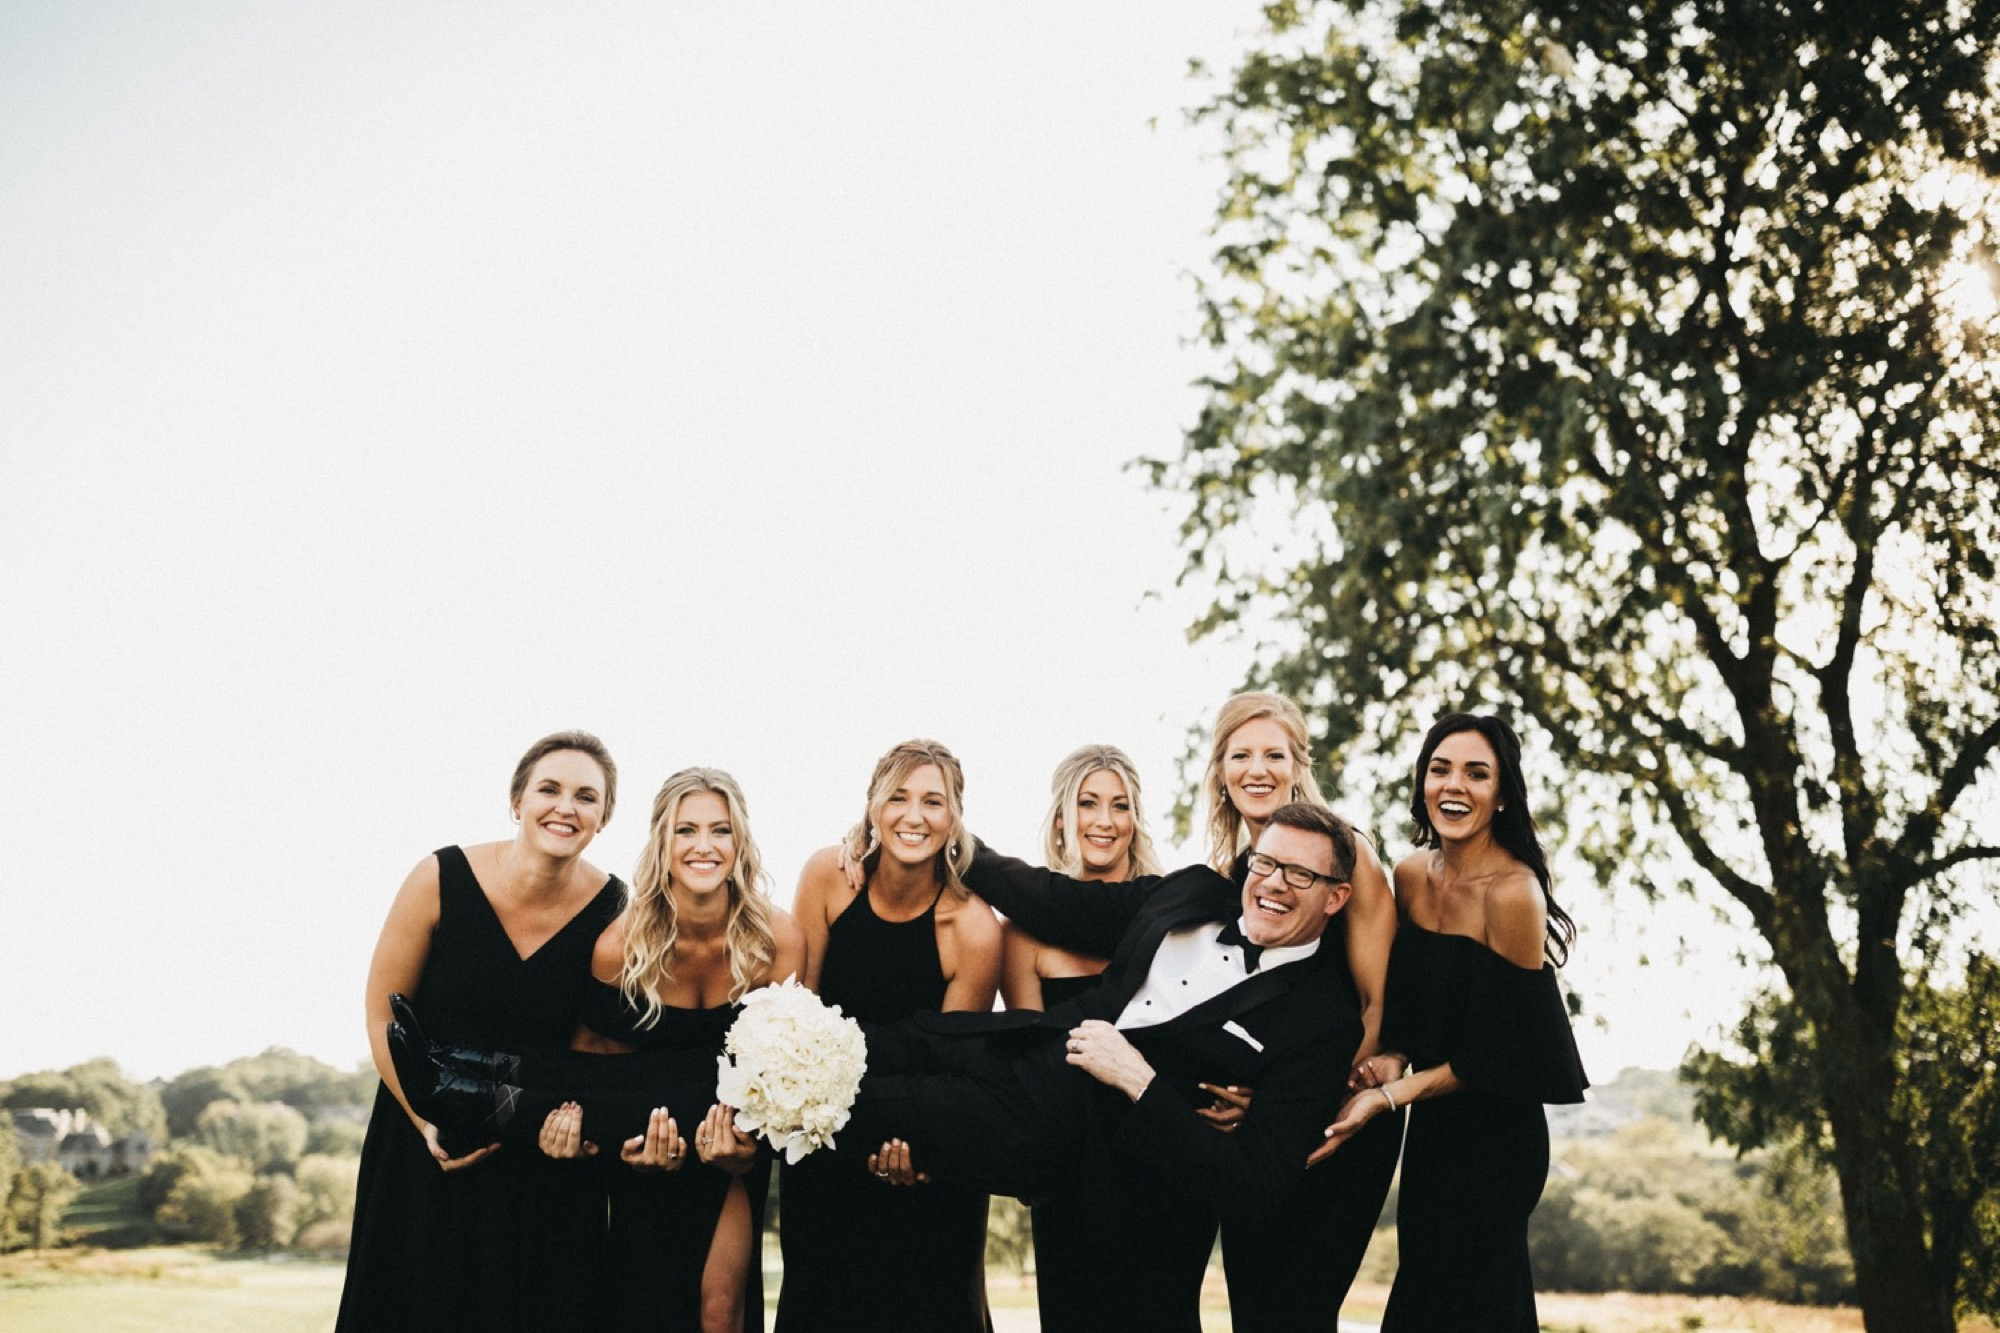 bridal party holds groom up at modern glen oaks wedding in des moines